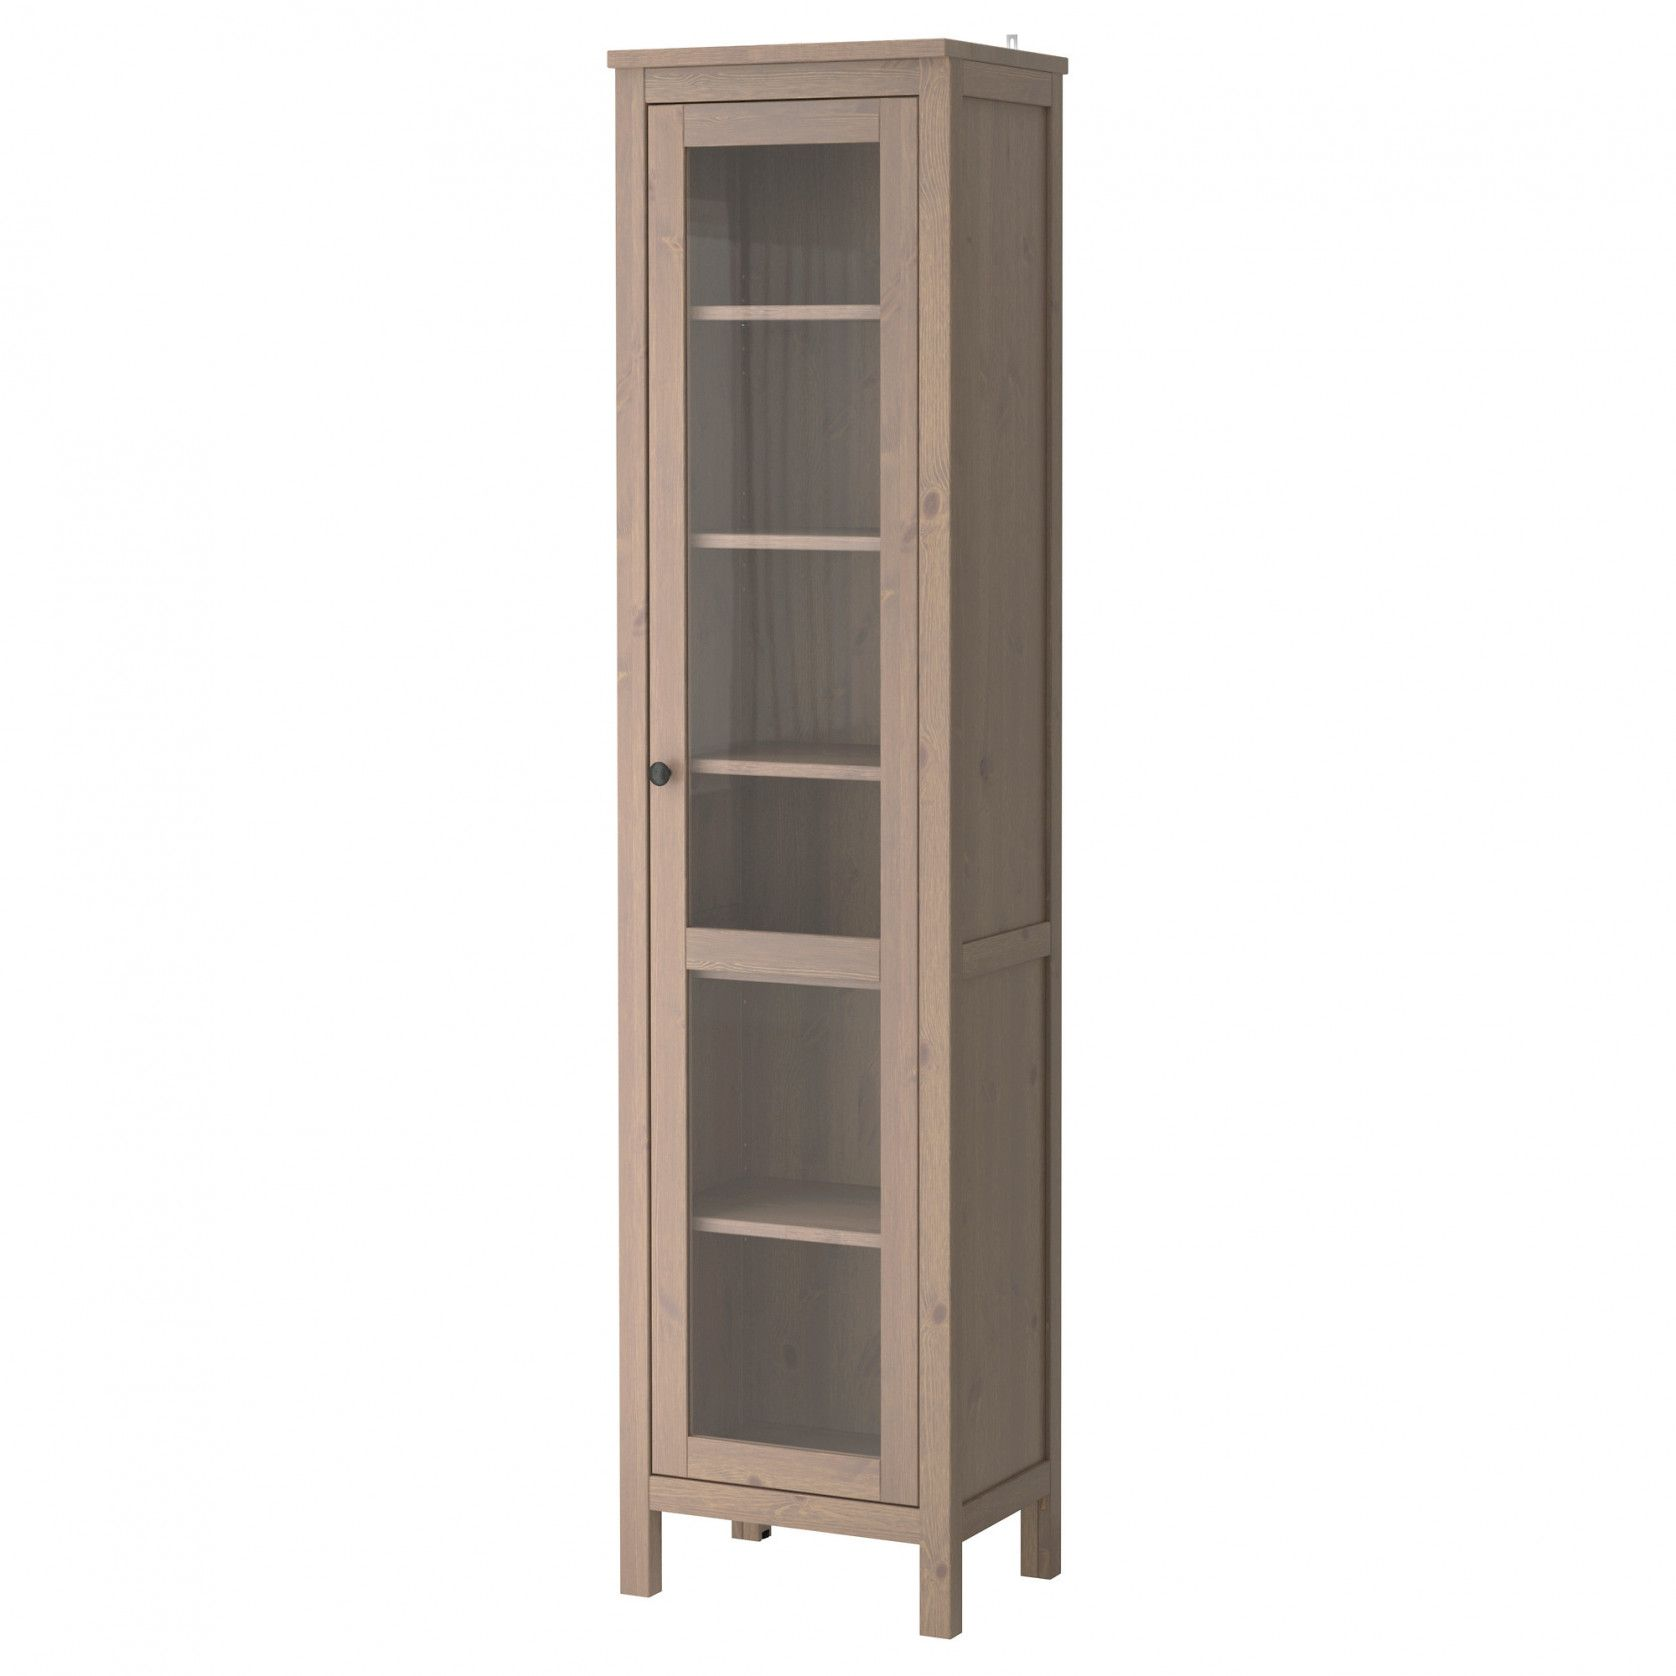 Kittery Dark Coffee Narrow Iron Cabinet In 2019 Shelving Storage Tea Display